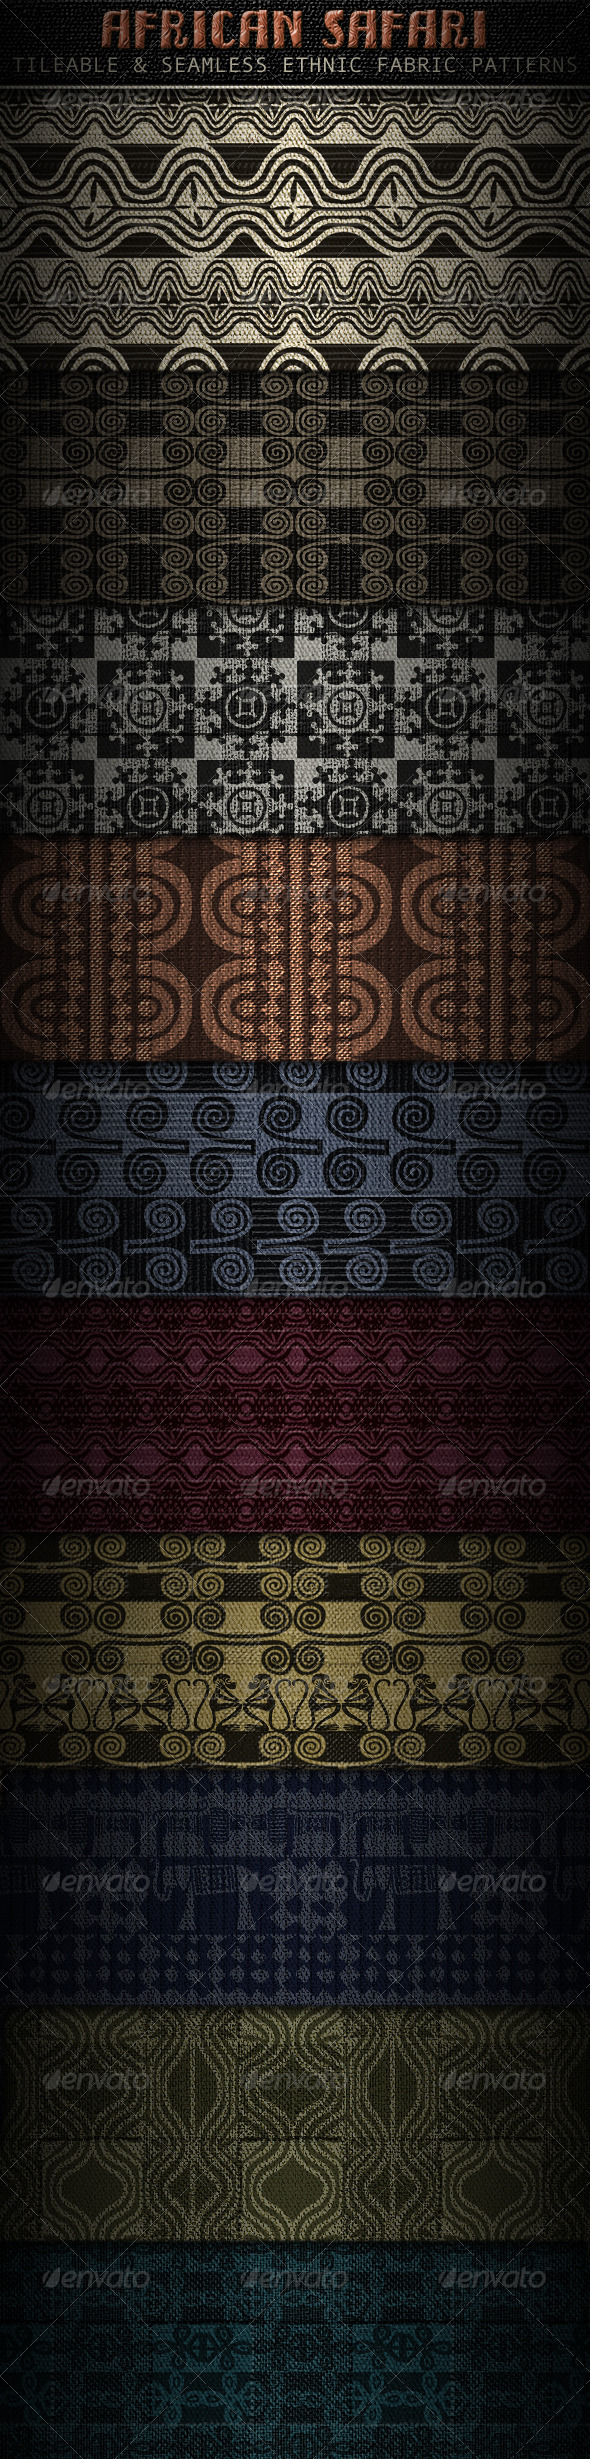 GraphicRiver Ethnic Fabric Patterns; Africa inspired 1543444